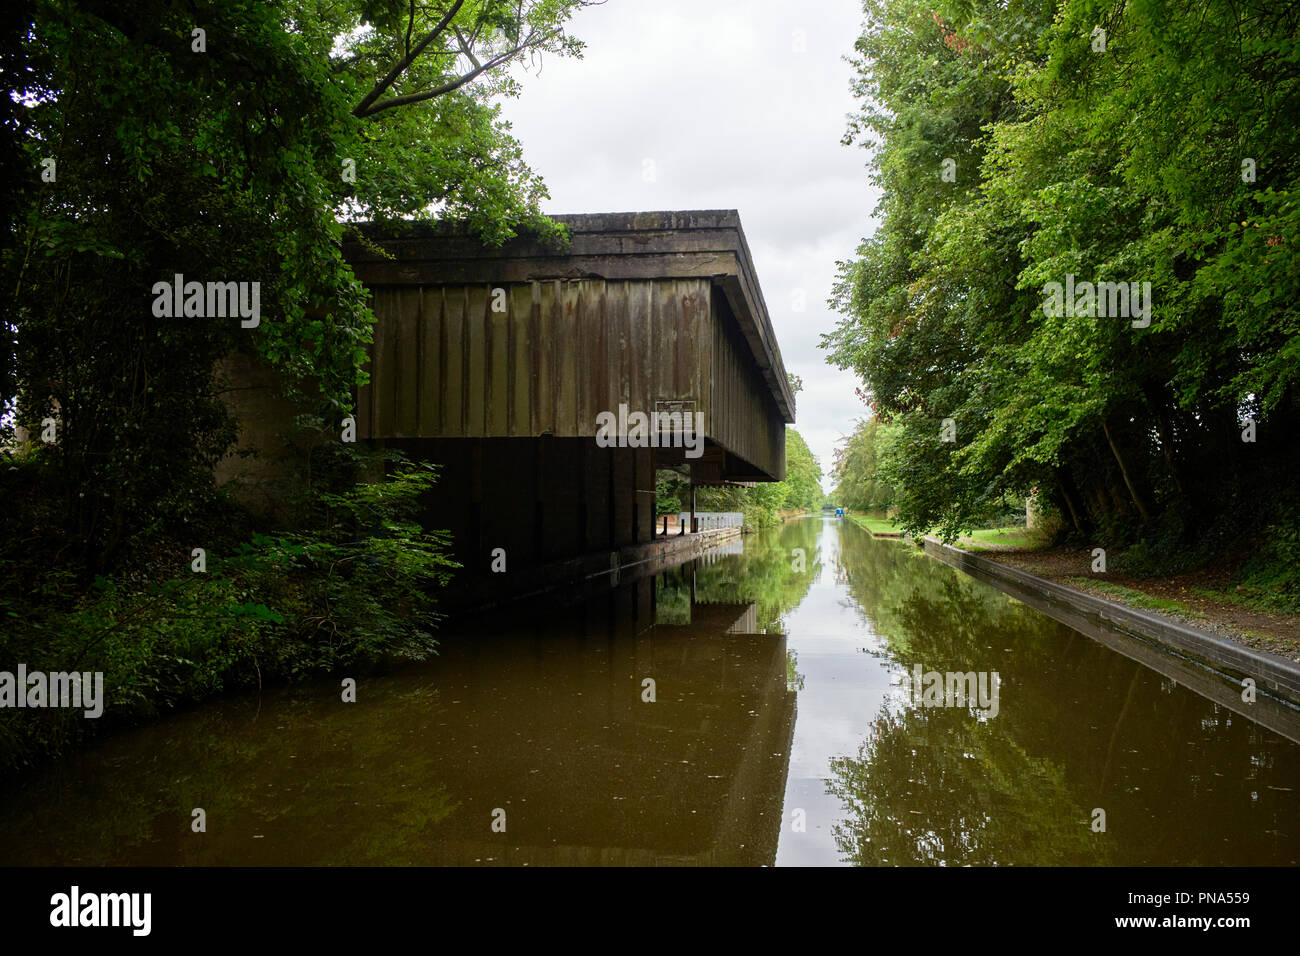 Cadbury Wharf at Knighton on the Shropshire Union Canal where chocolate crumb was produced before being transported by canal boat to Bournville - Stock Image